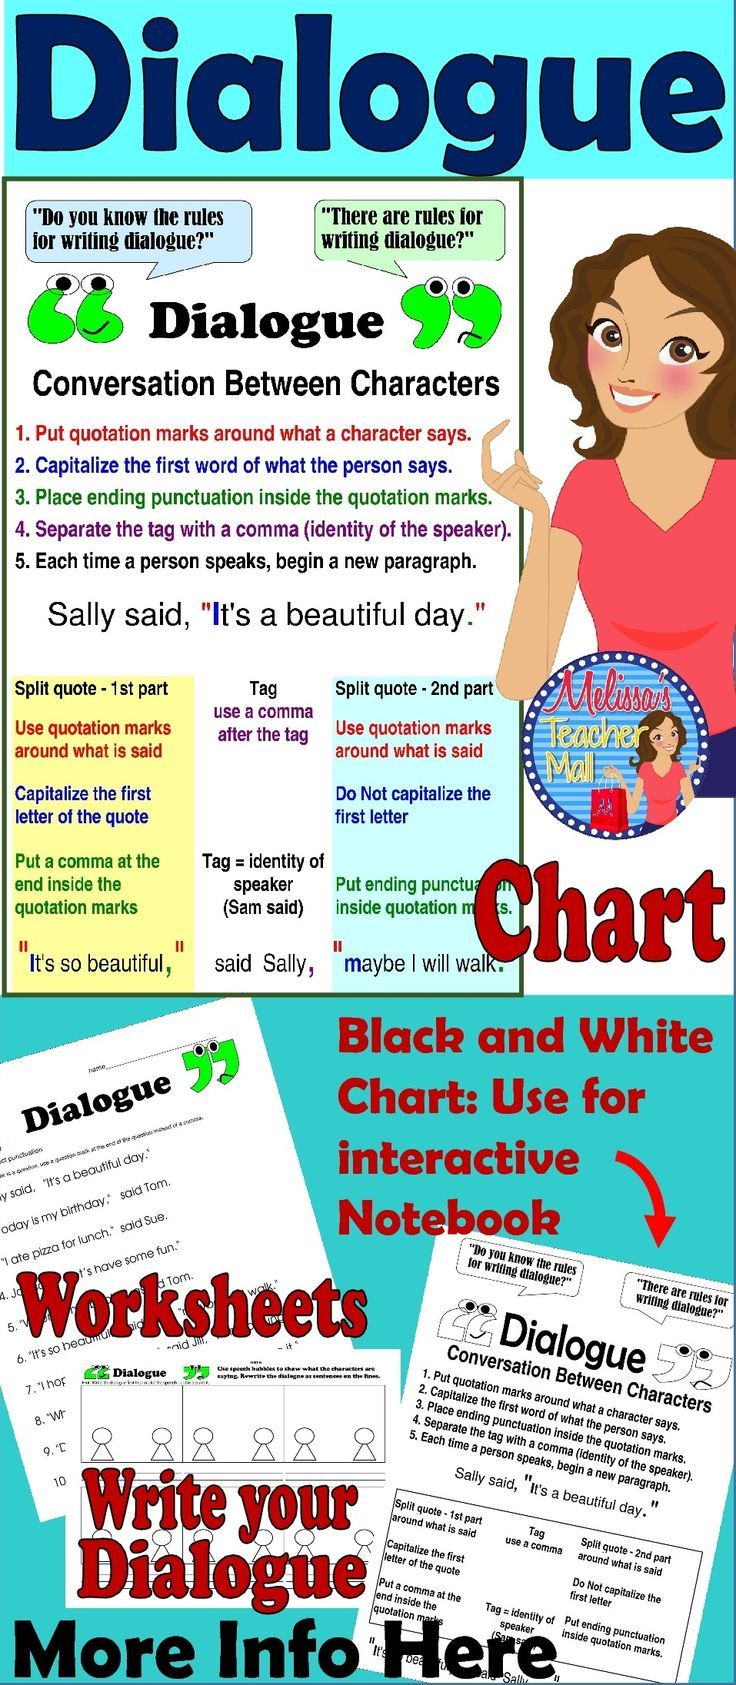 Writing Dialogue, Punctuation and Capitalization Rules | Education ...